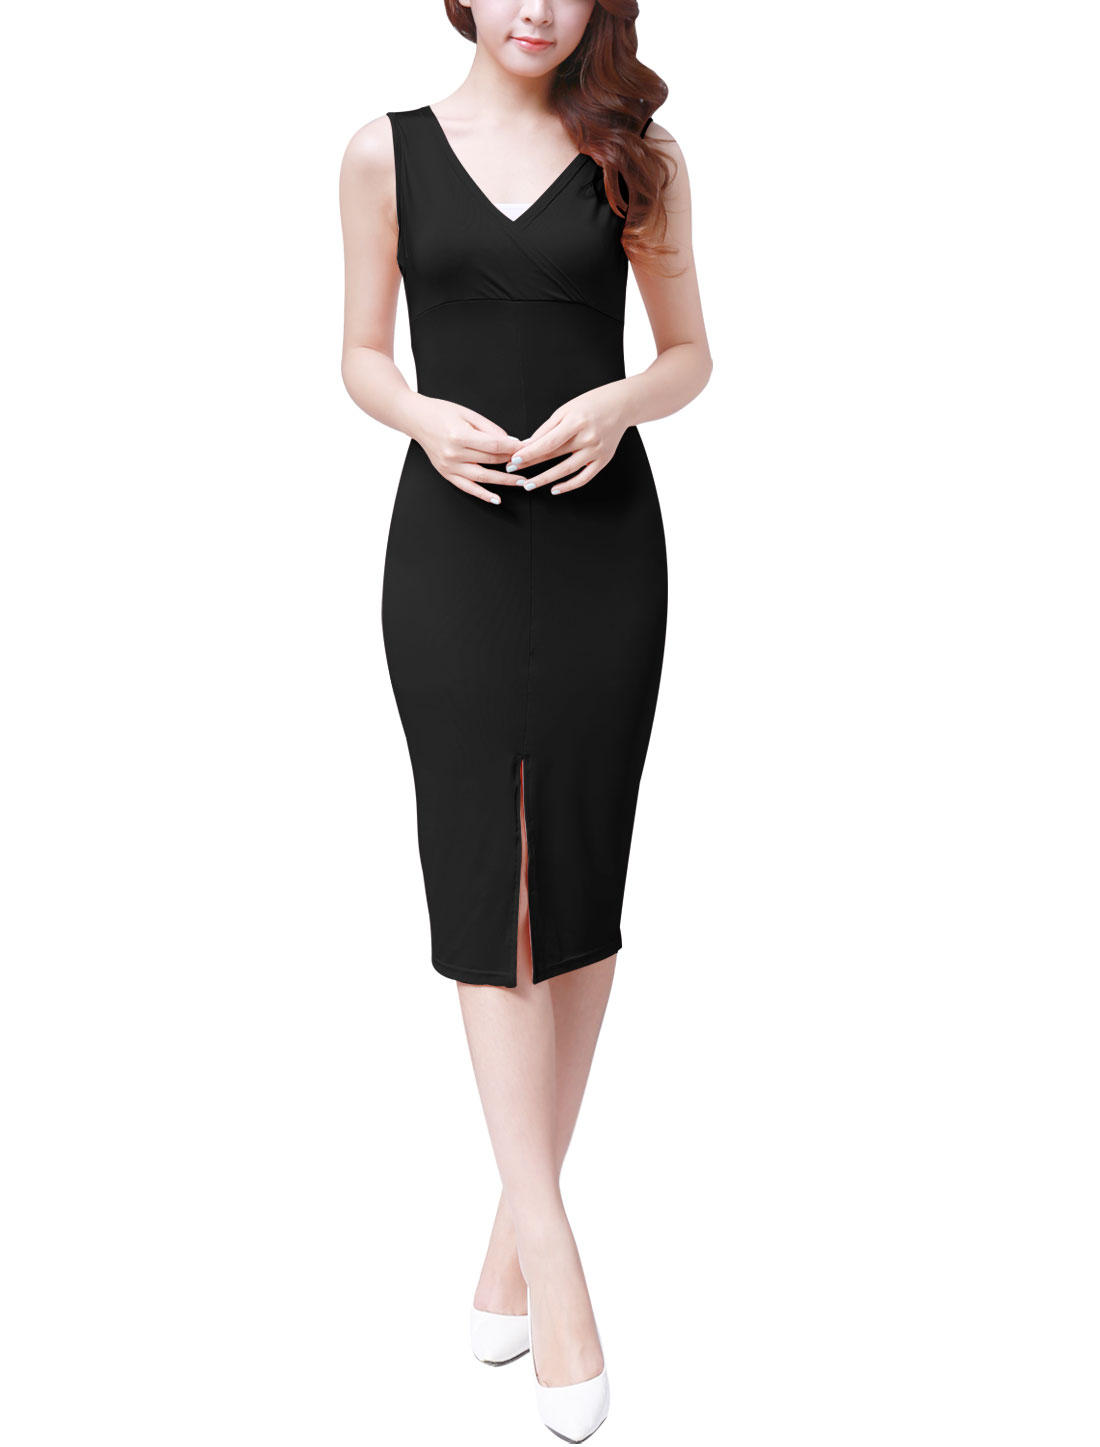 Lady NEW V-Neck Sleeveless Slim Fit Pure Black Knee-Length Dress M